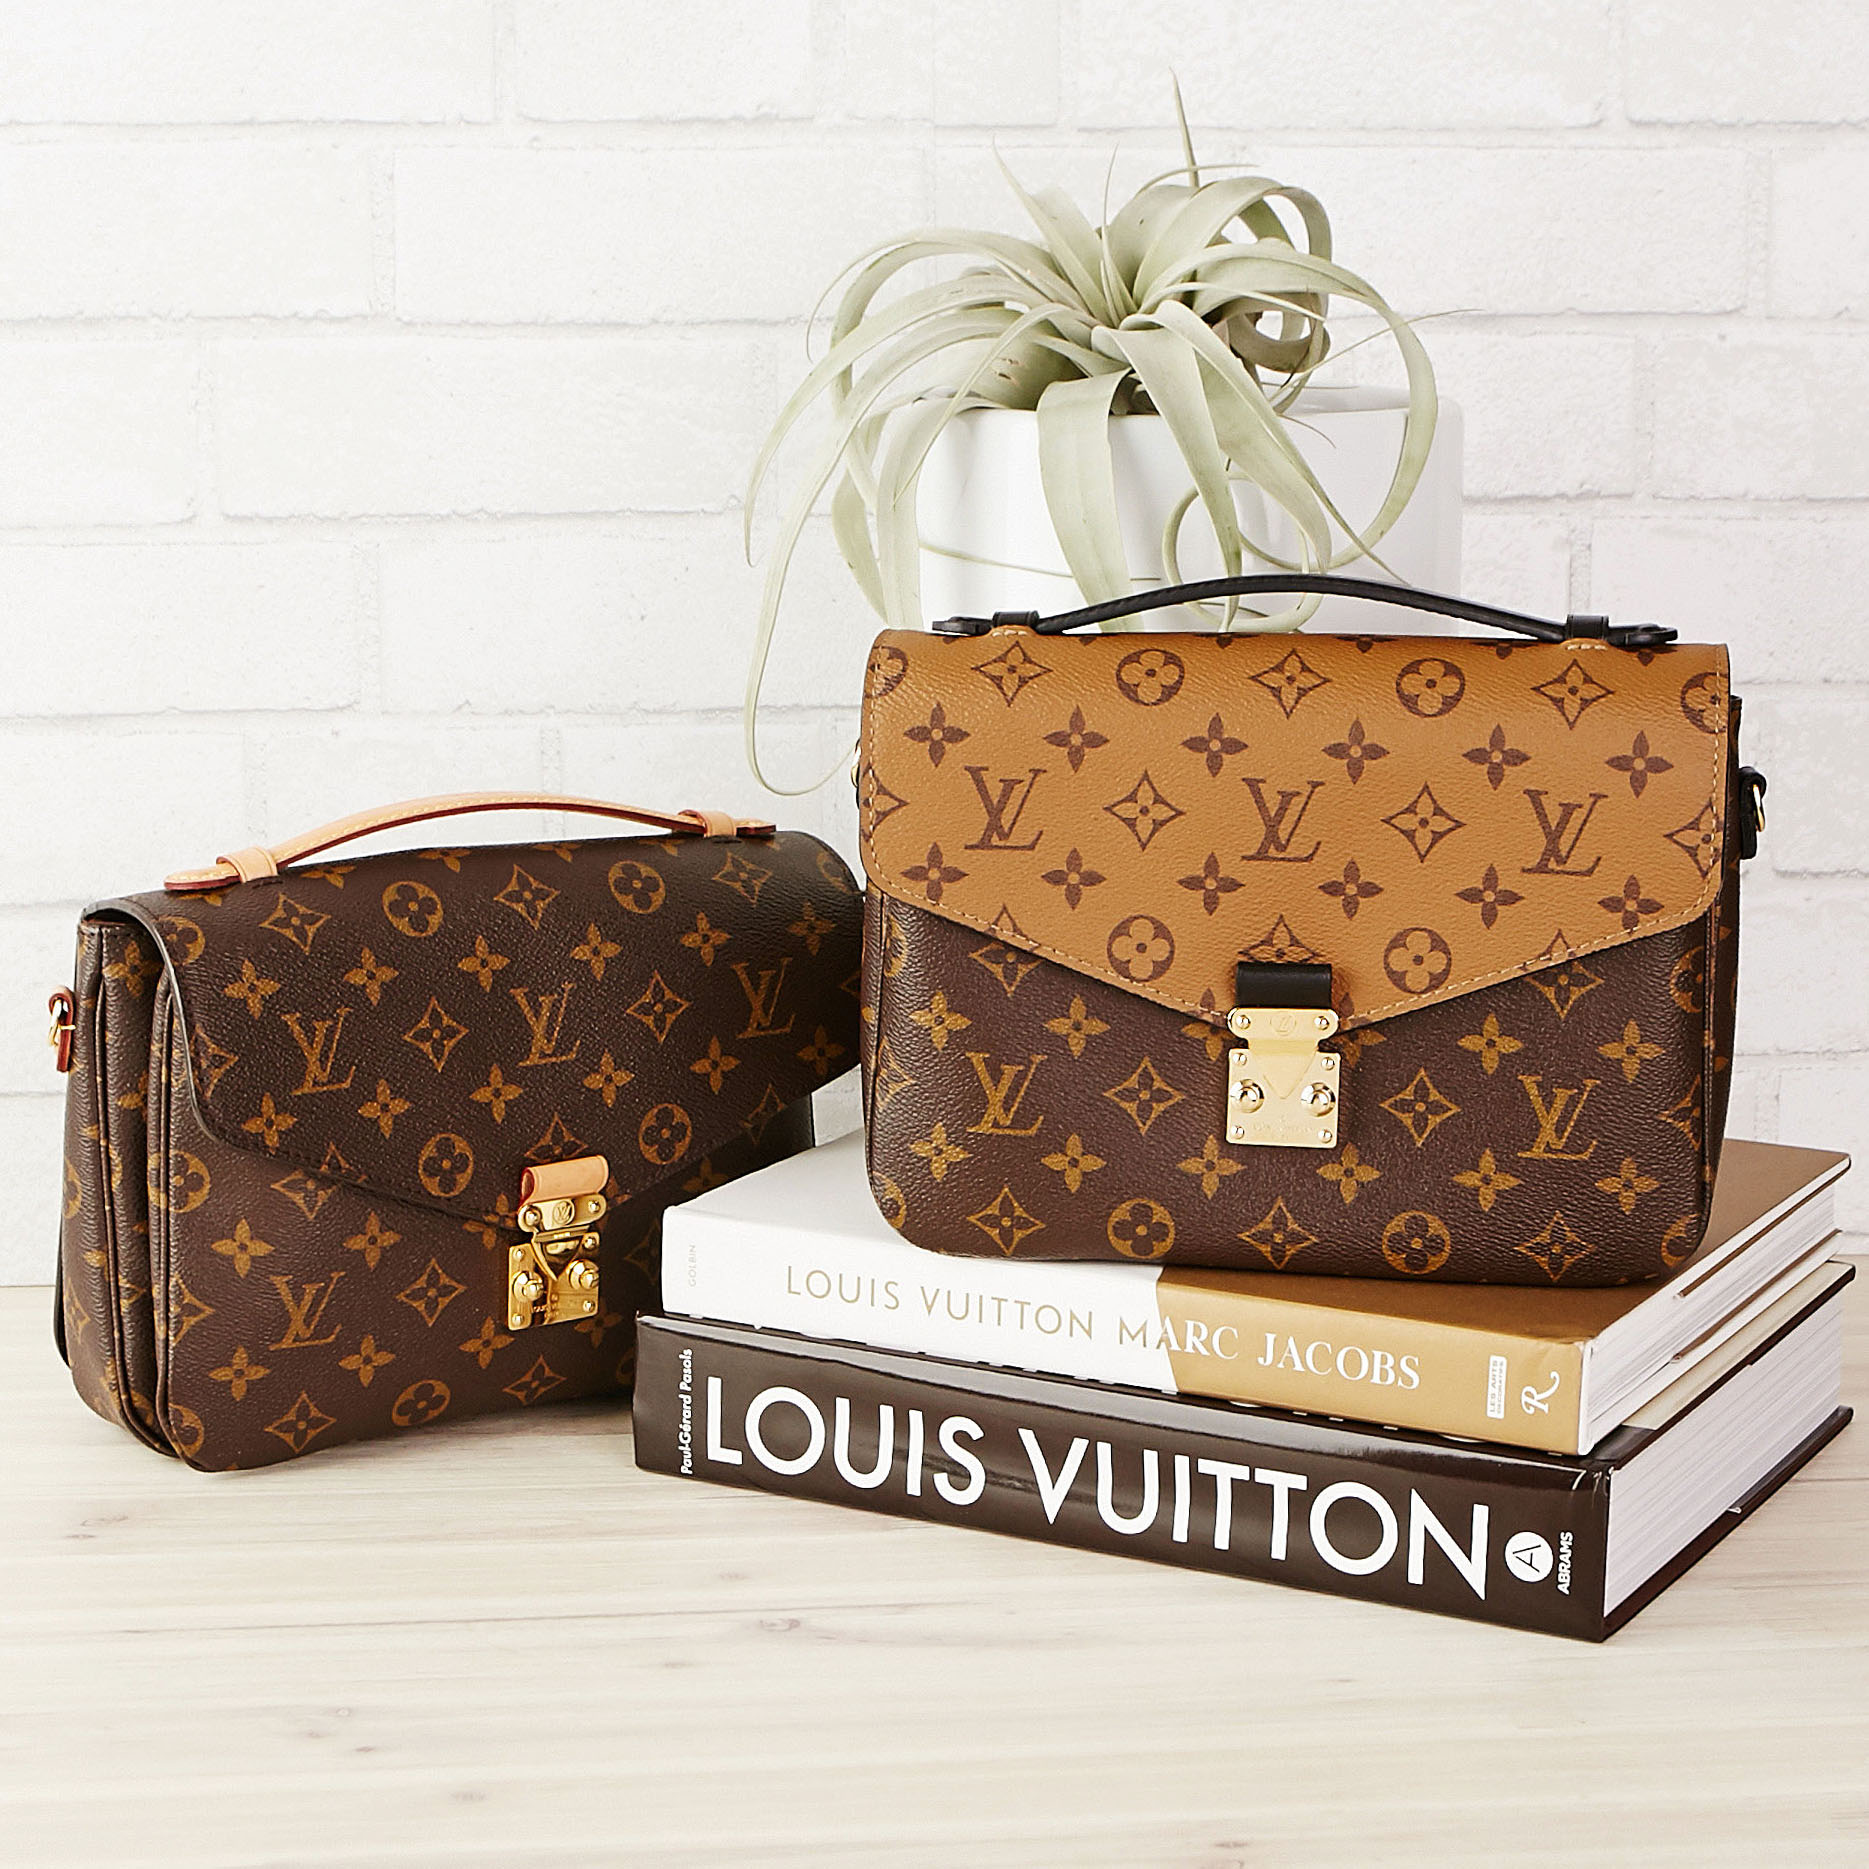 If You Like the Louis Vuitton Pochette Metis d0db5d77e3f49